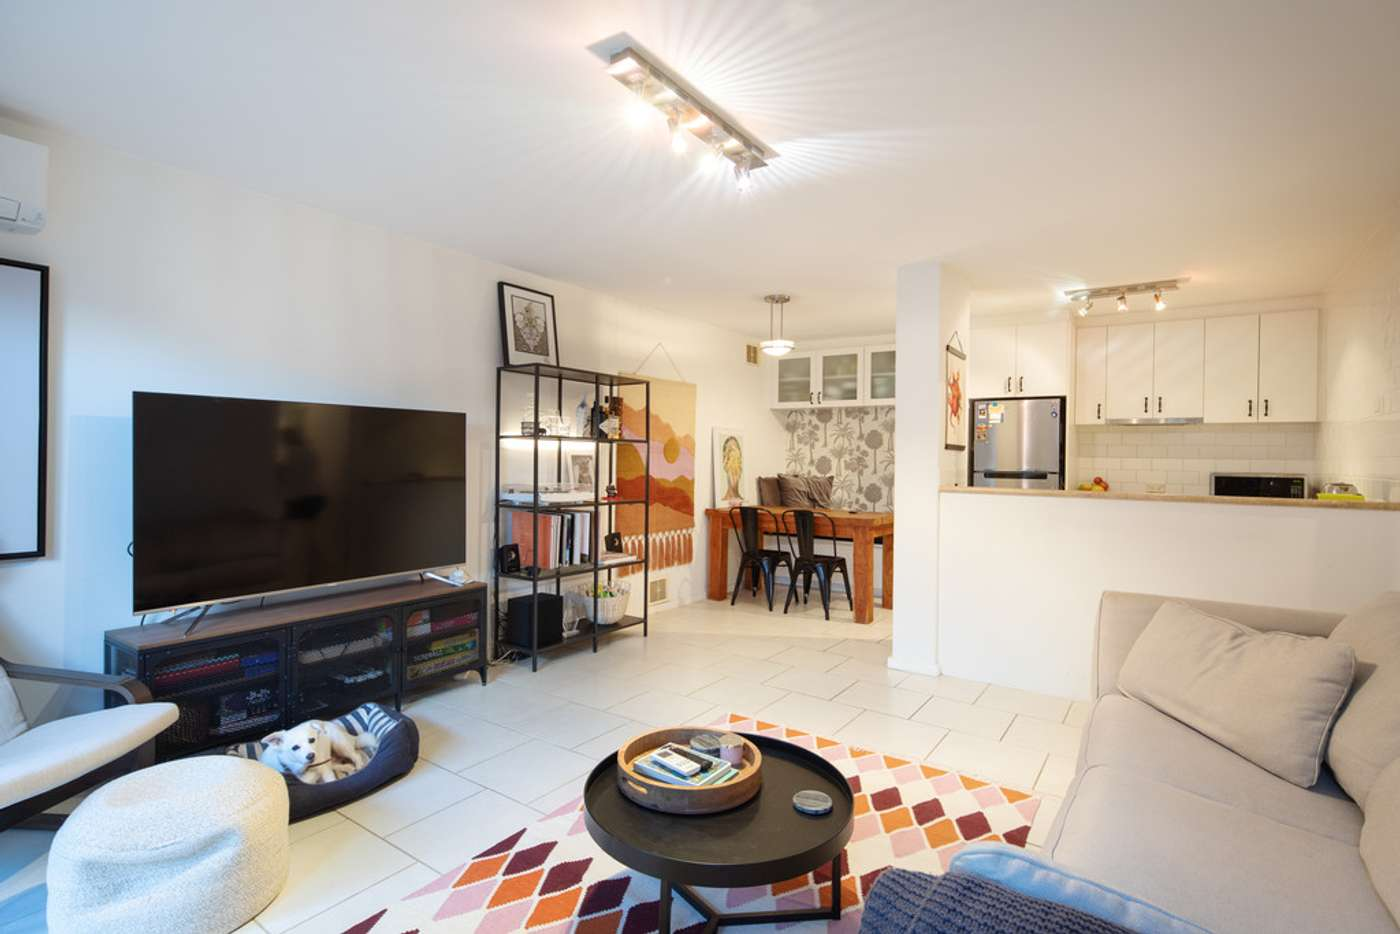 Main view of Homely apartment listing, 1/14 Queens Crescent, Mount Lawley WA 6050